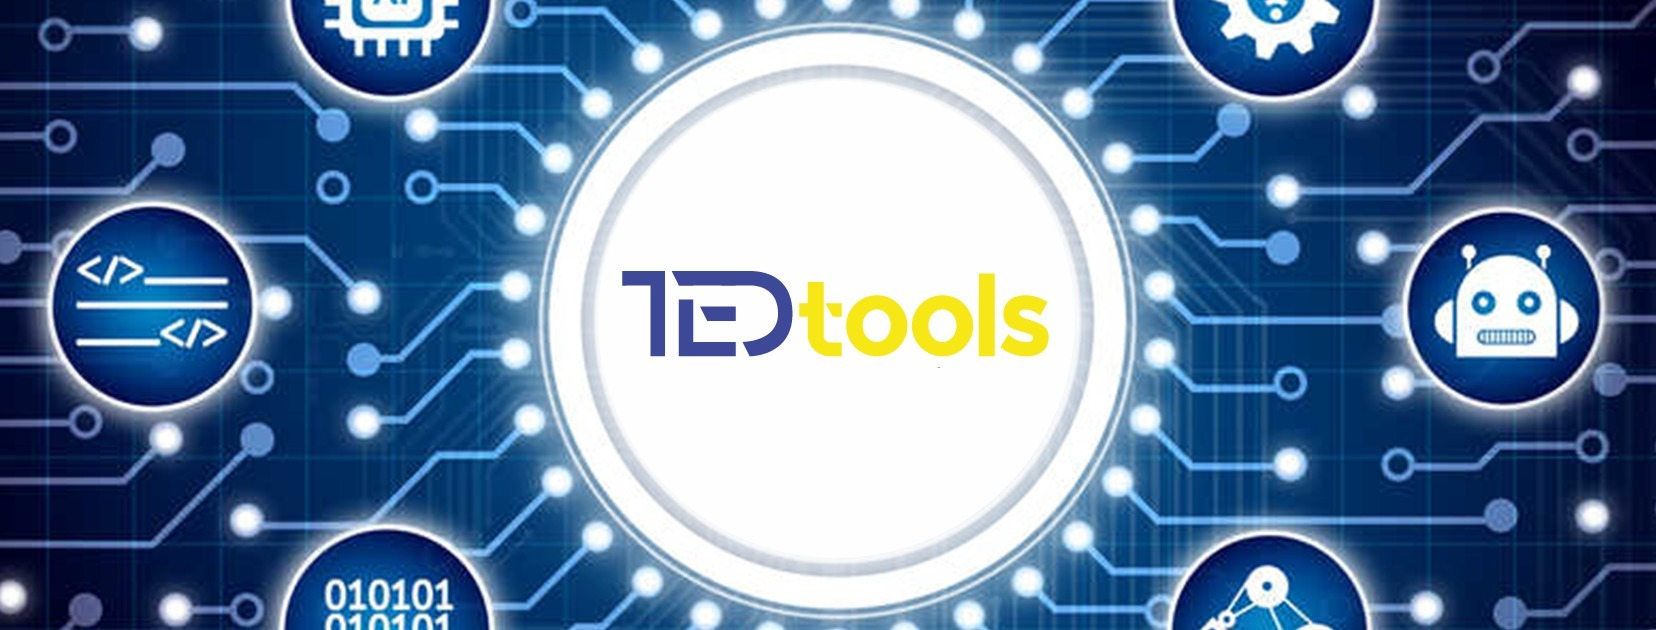 TedTools (@tedtools) Cover Image